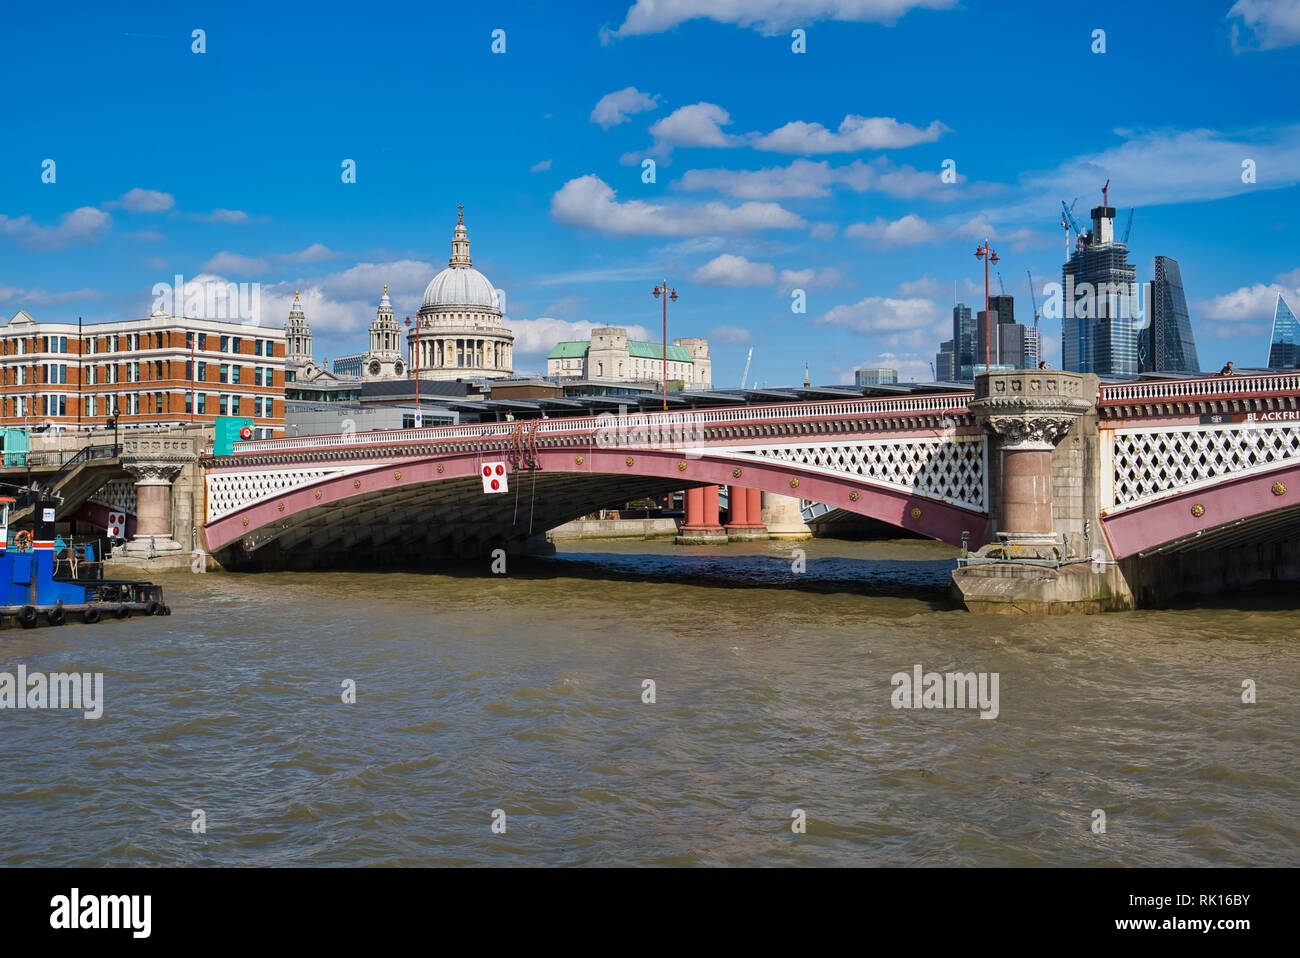 LONDON, UK - SEPTEMBER 9, 2018: Blackfriars Bridge is a road